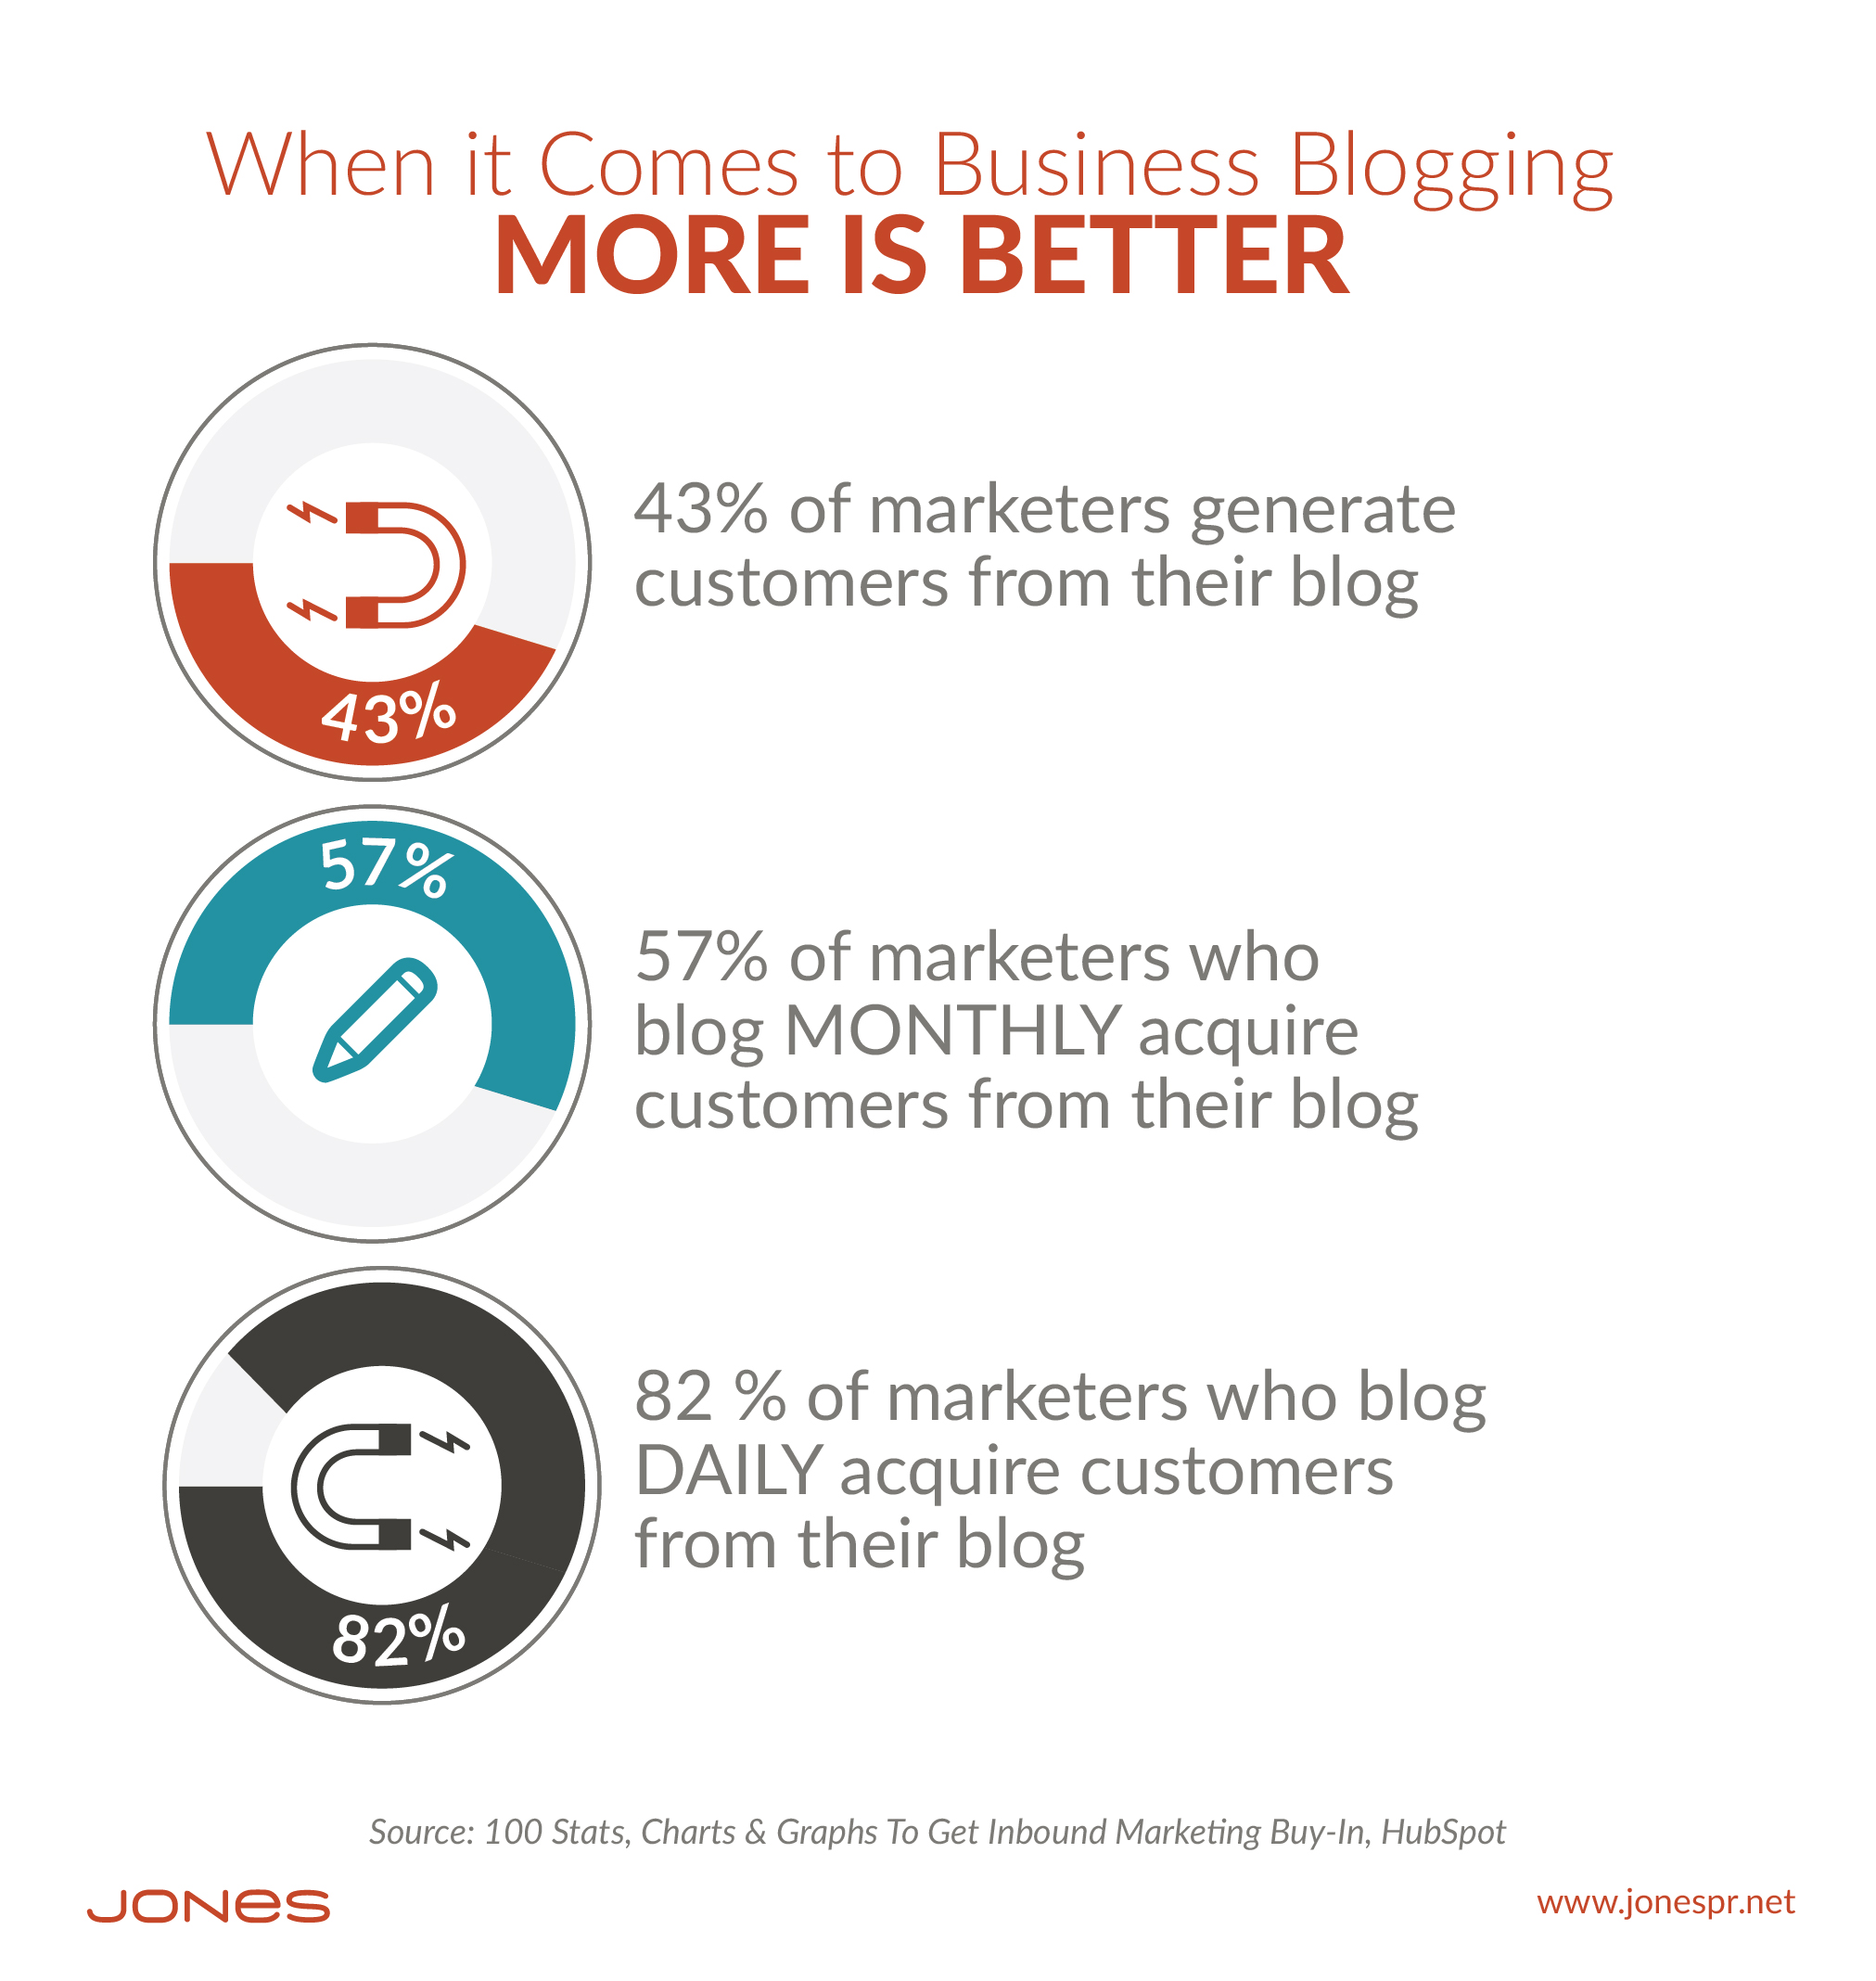 Daily Bloggers Report More Customer Aquisition